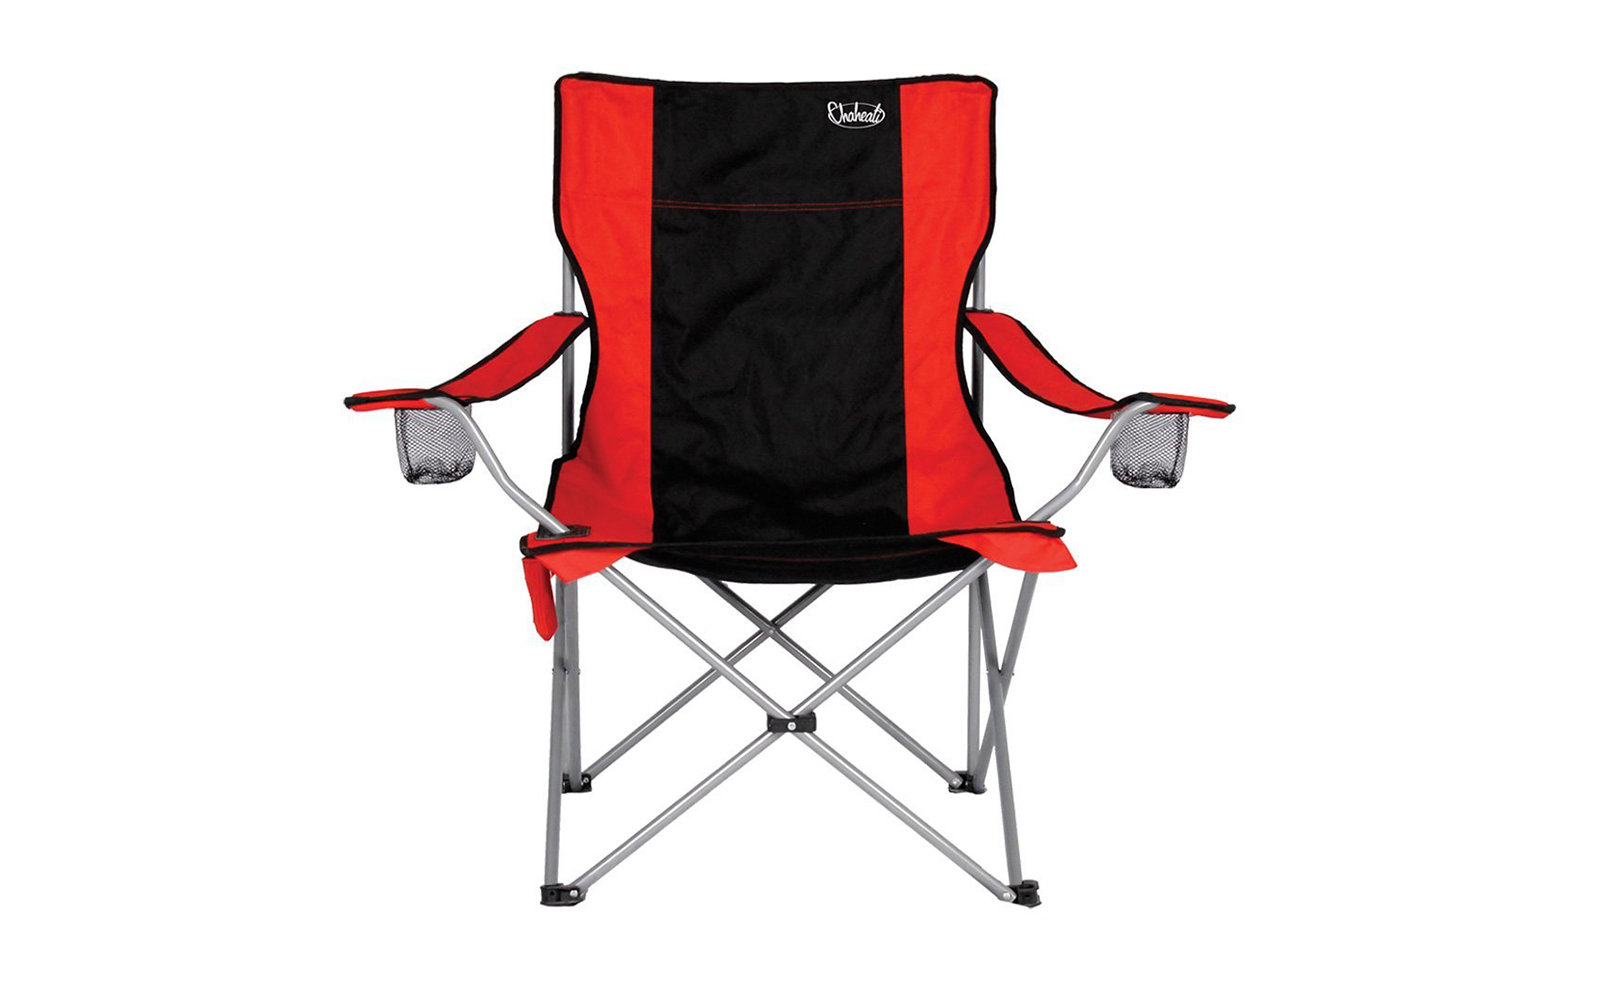 Office Max Folding Chairs in addition Alps Mountaineering Folding C  Chair With Pro Tec Powder Coating Finish furthermore Flash Furniture Hercules Series Premium Curved Triple Braced Quad Hinged Burgundy Fabric Upholstered Metal Folding Chair Ha Mc320af Bg Gg Ff Ha Mc320af Bg Gg likewise Folding Tv Tray Clips in addition 37808773. on best folding chair for sporting events